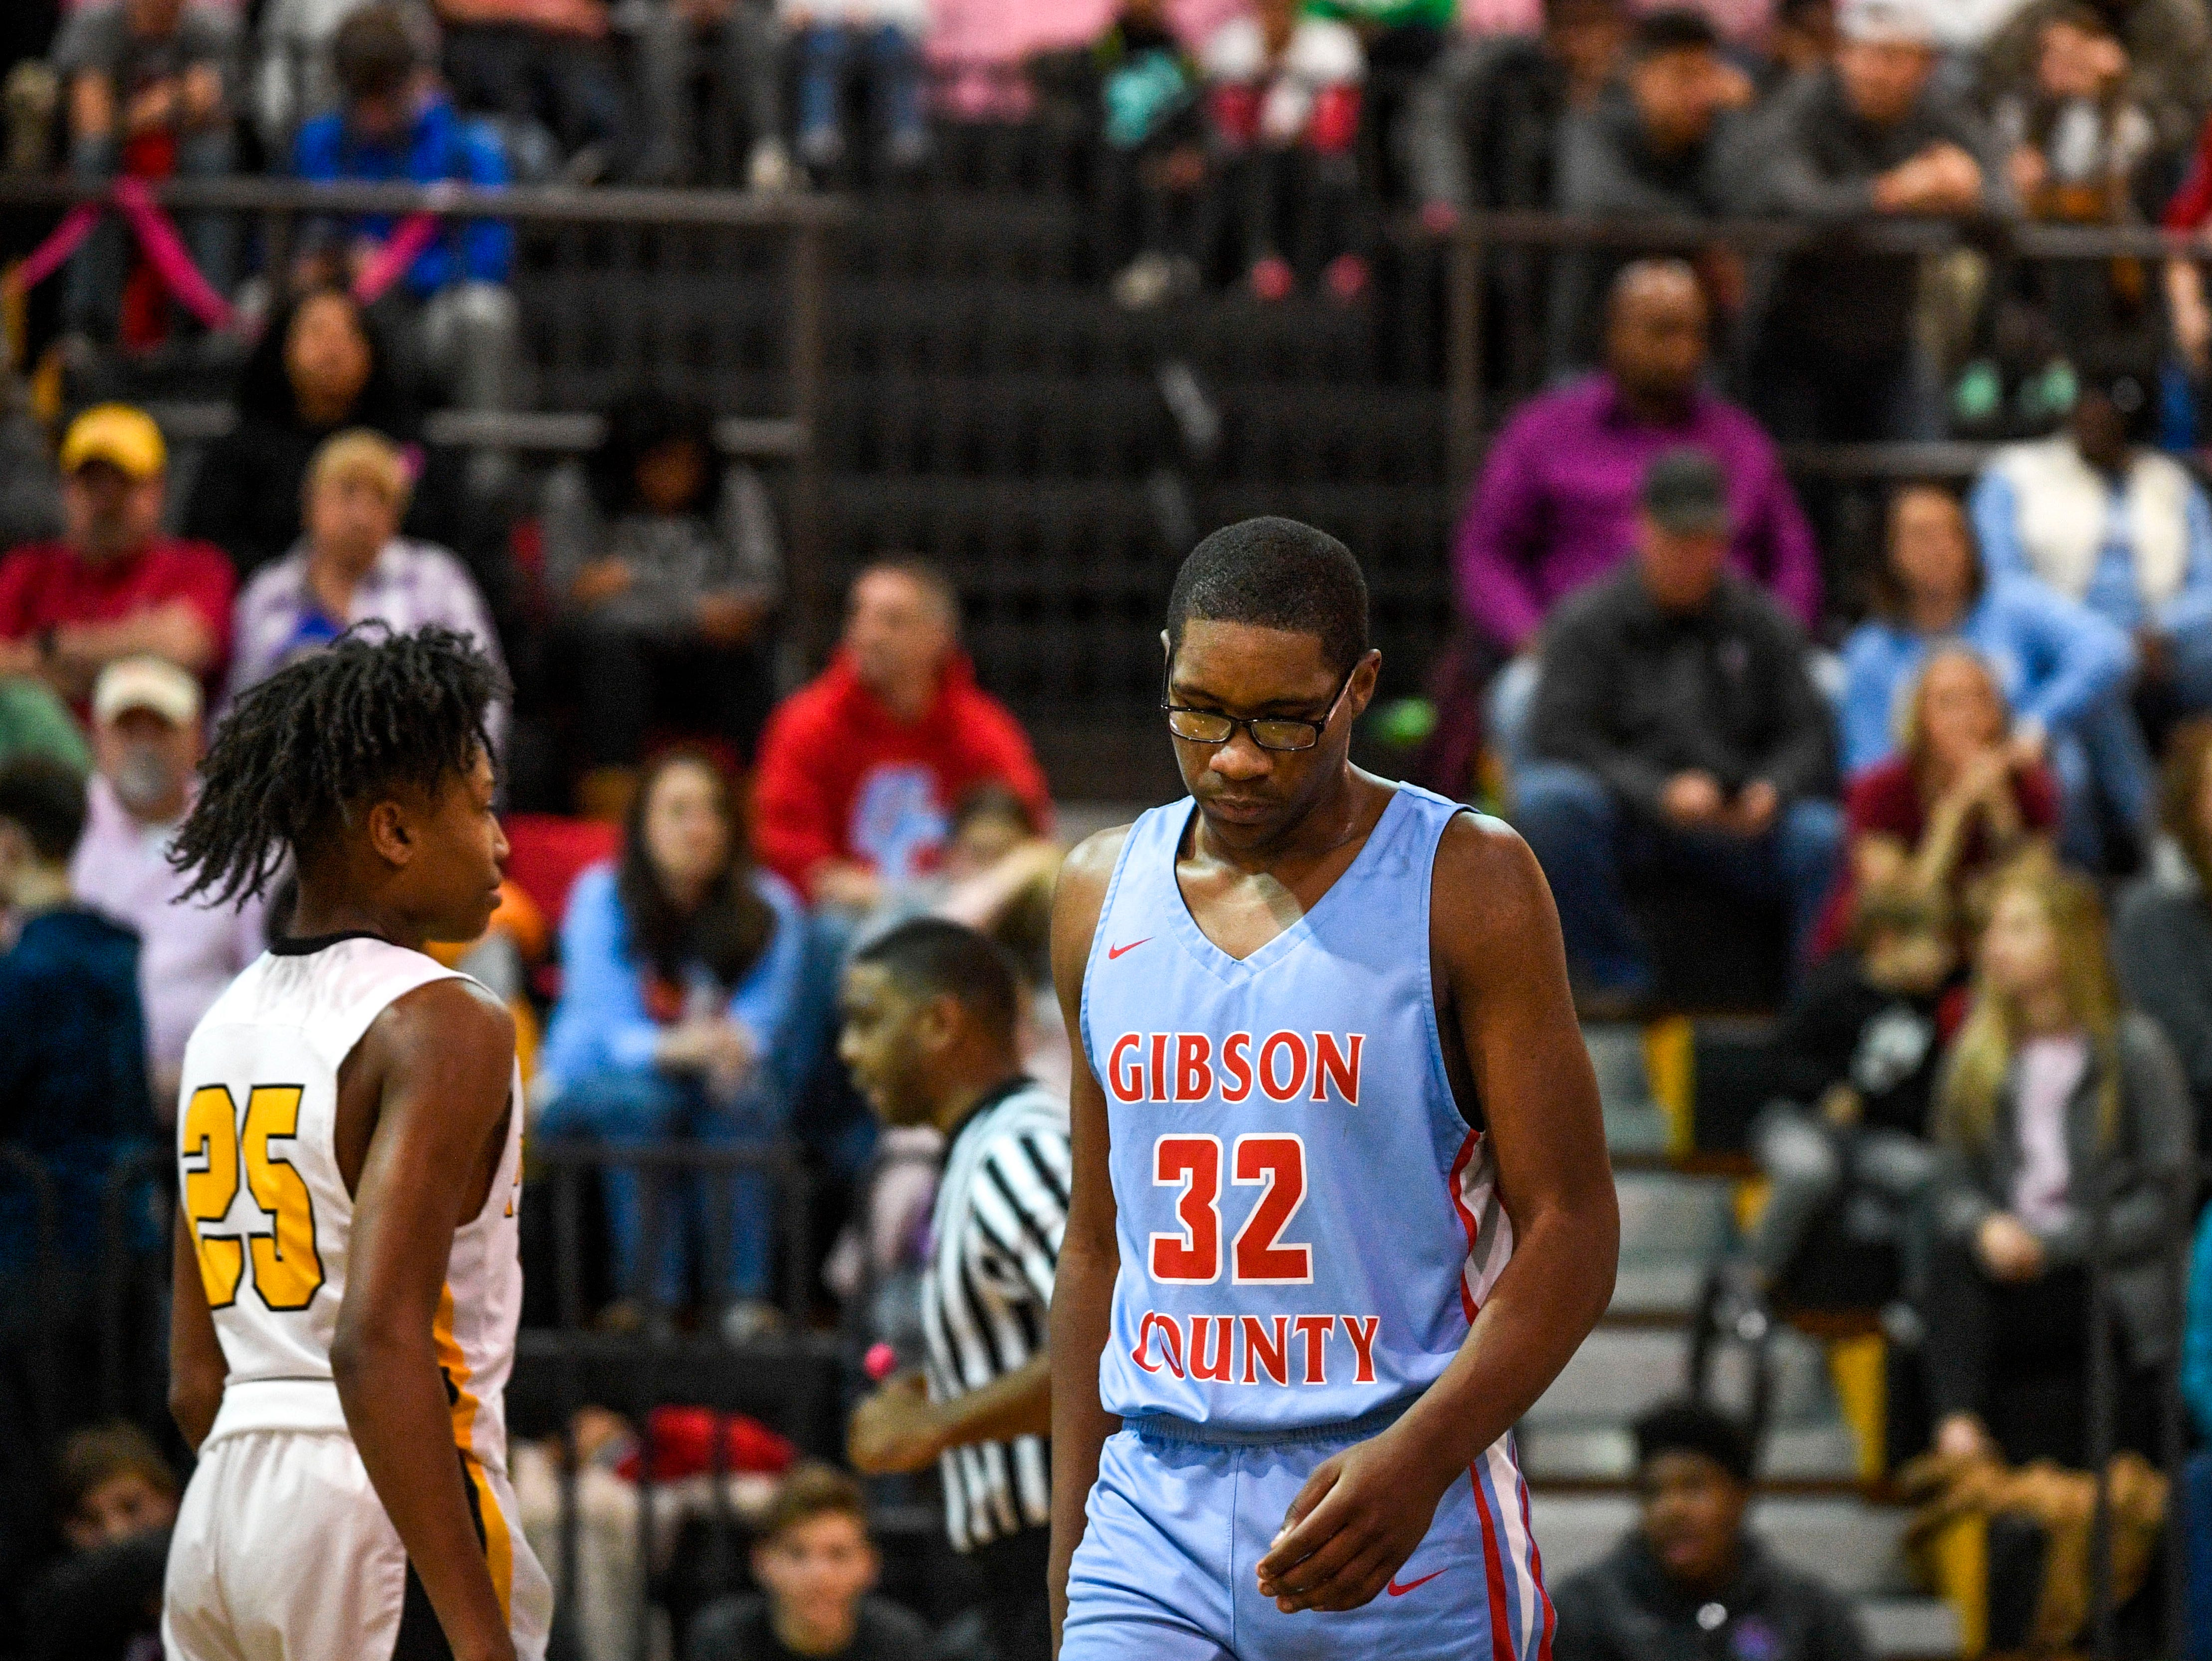 Gibson County's Jarvis Myers (32) walks back down the court with his head down in a TSSAA basketball game between Peabody and Gibson County at Peabody High School in Trenton, Tenn., on Friday, Feb. 8, 2019.